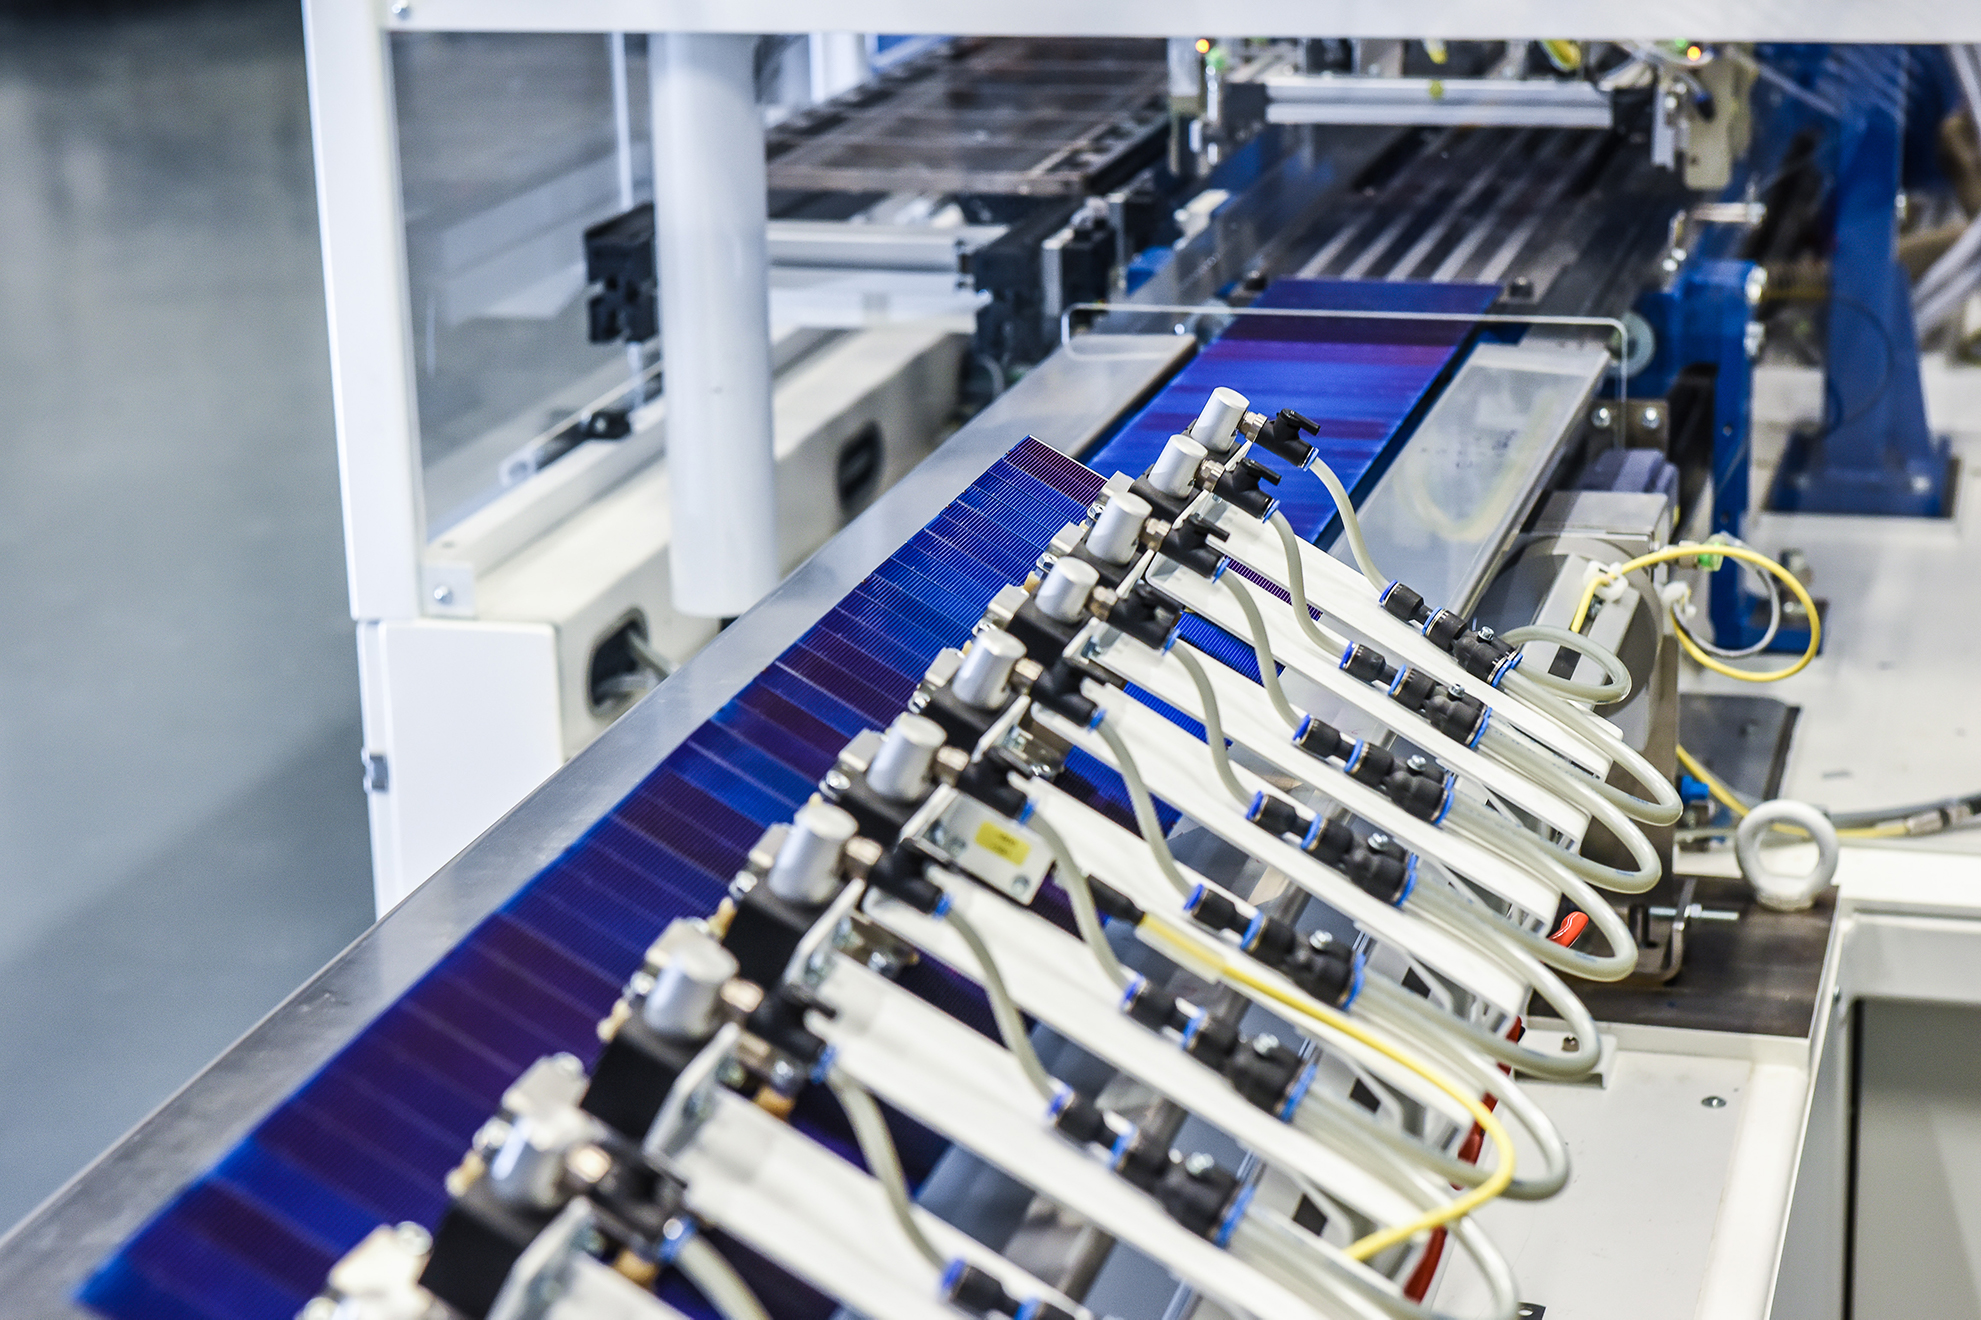 The Fraunhofer Institute for Solar Energy Systems (ISE) has developed a bonding method for the interconnection of silicon solar cells for the industrial production of shingle modules. Image: Fraunhofer ISE